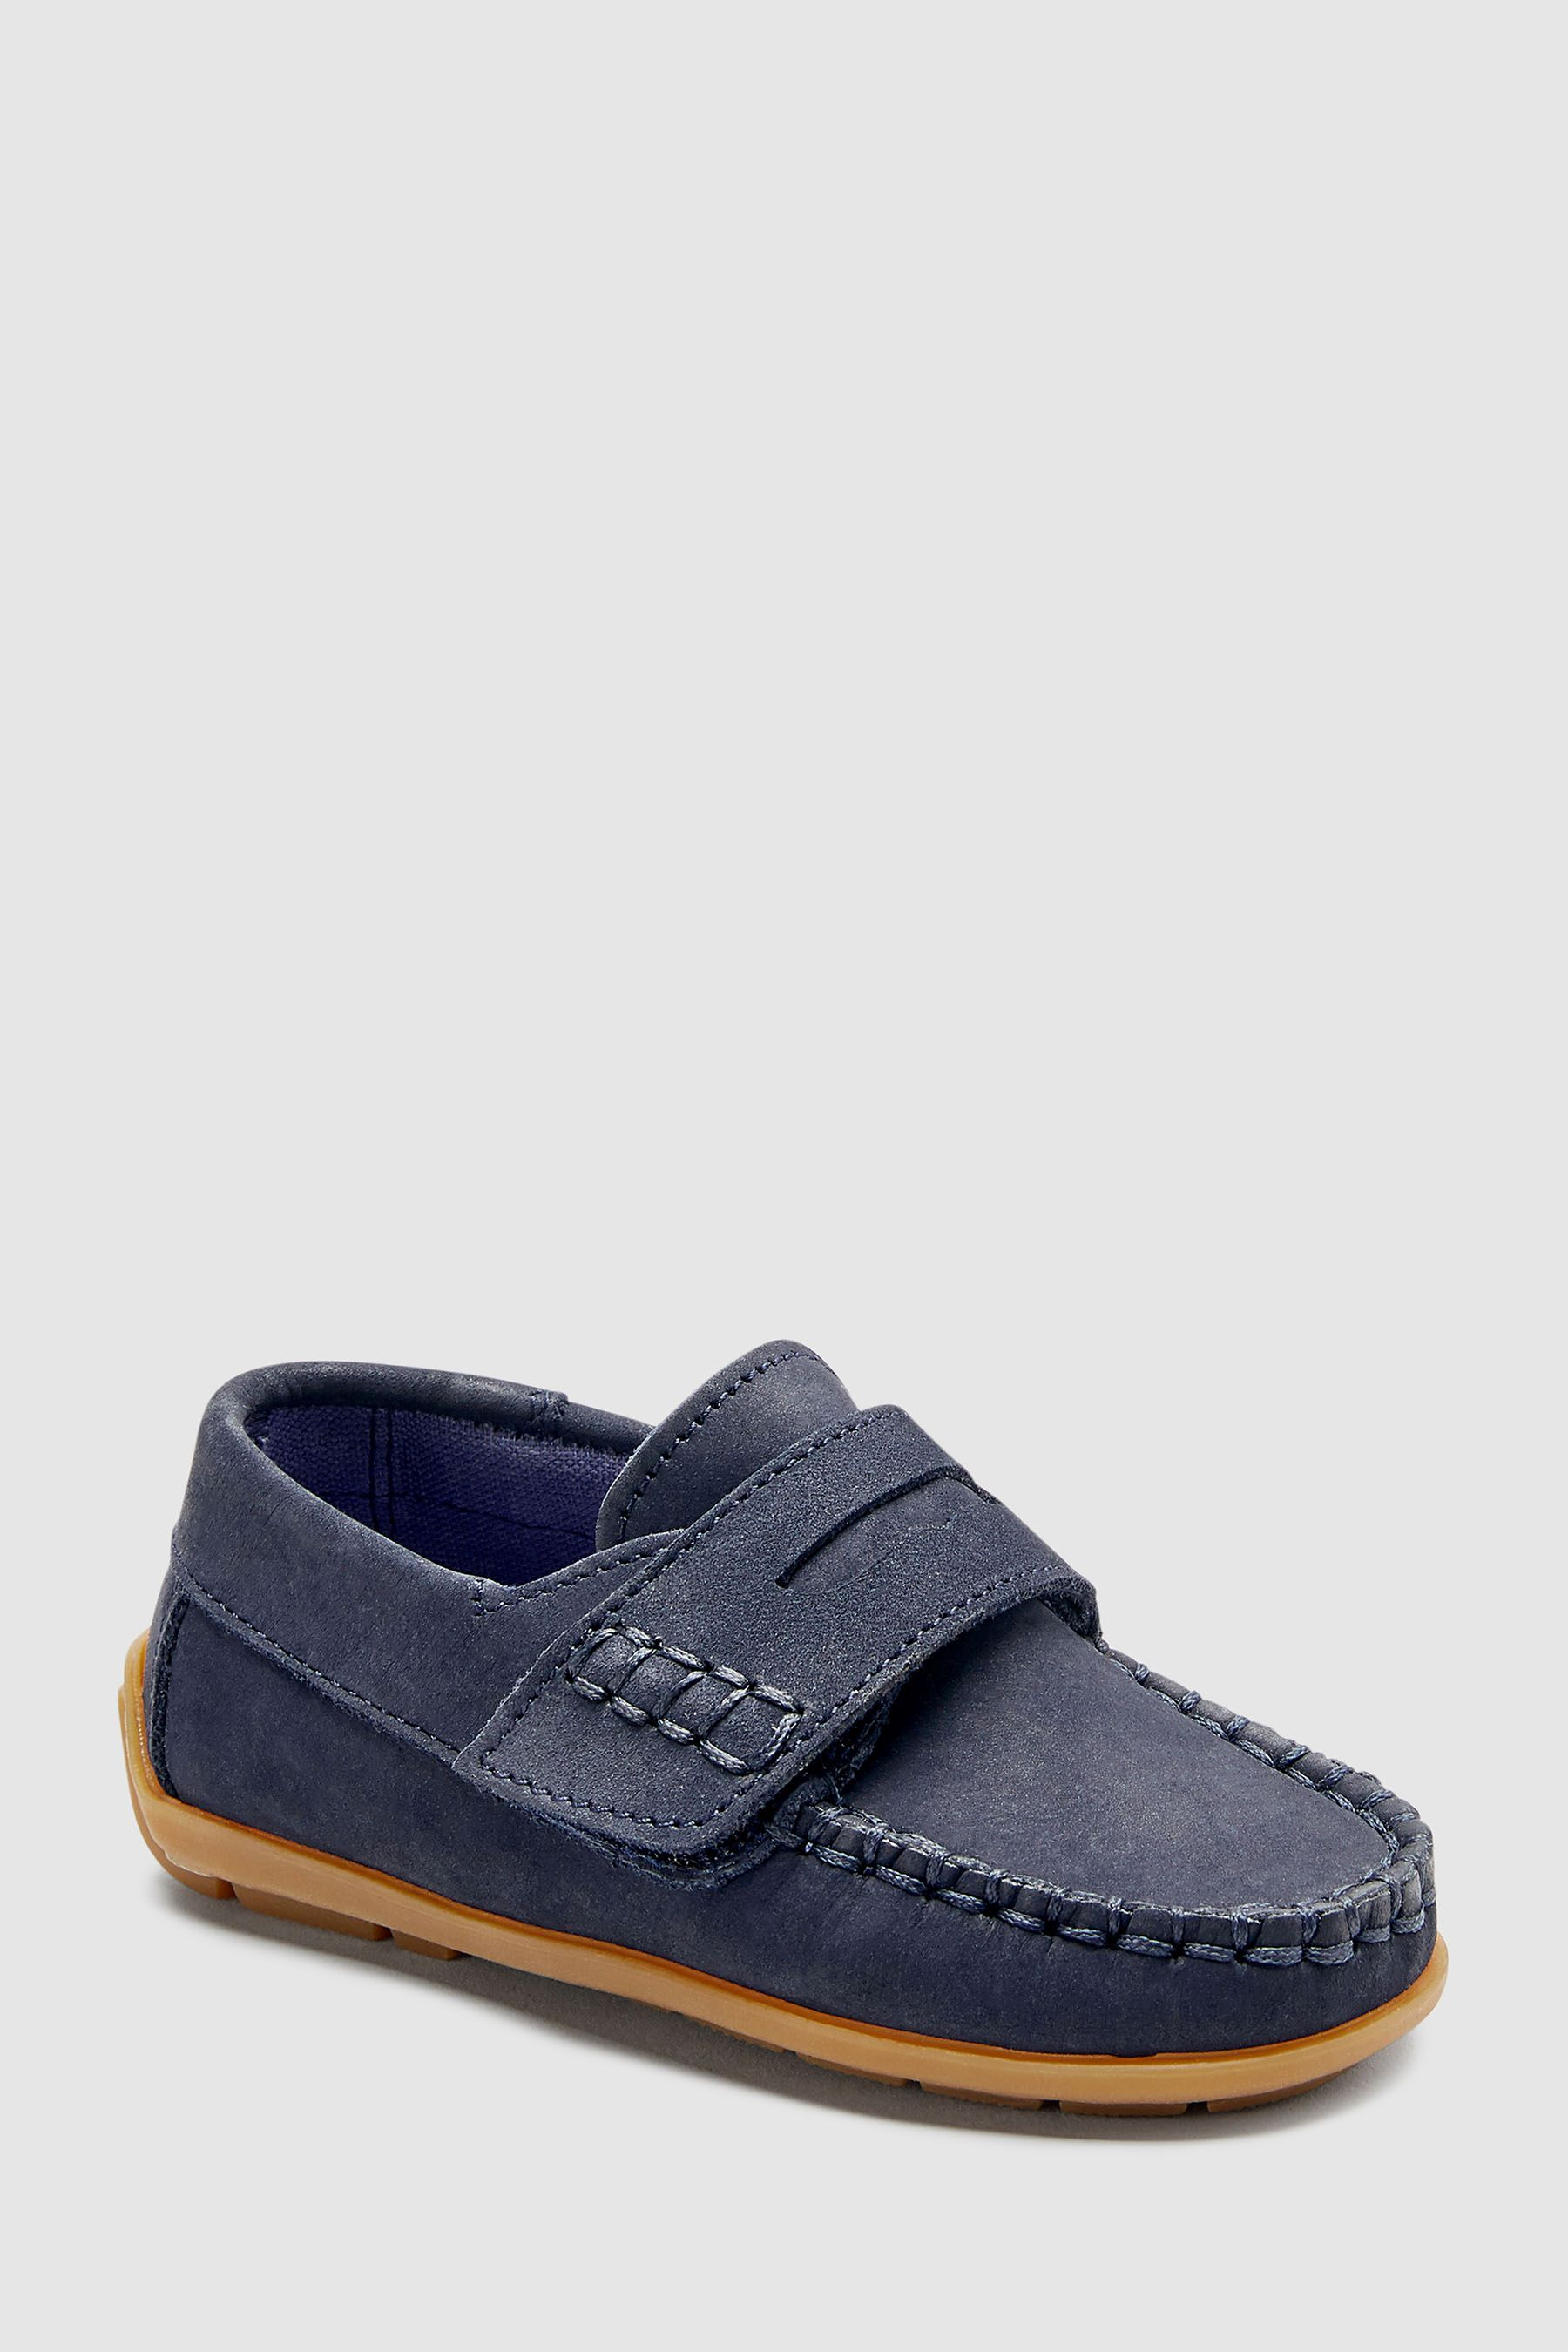 Boys Next Navy Penny Loafers (Younger